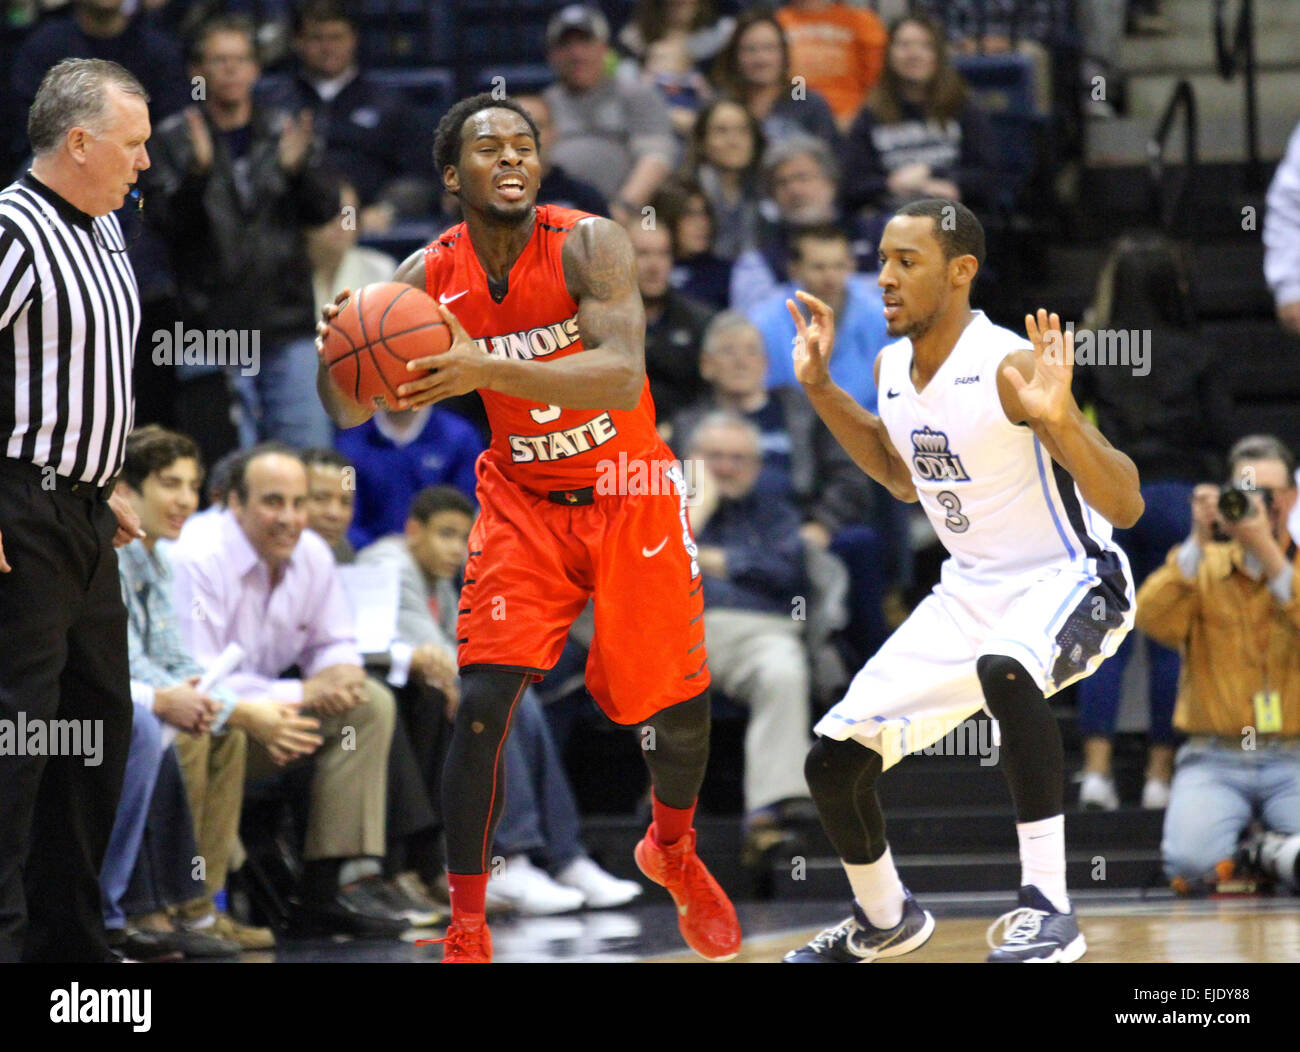 Norfolk, VA., USA. 23rd March, 2015. NCAA Basketball 2015: Illinois State Redbirds guard Daishon Knight (3) and - Stock Image